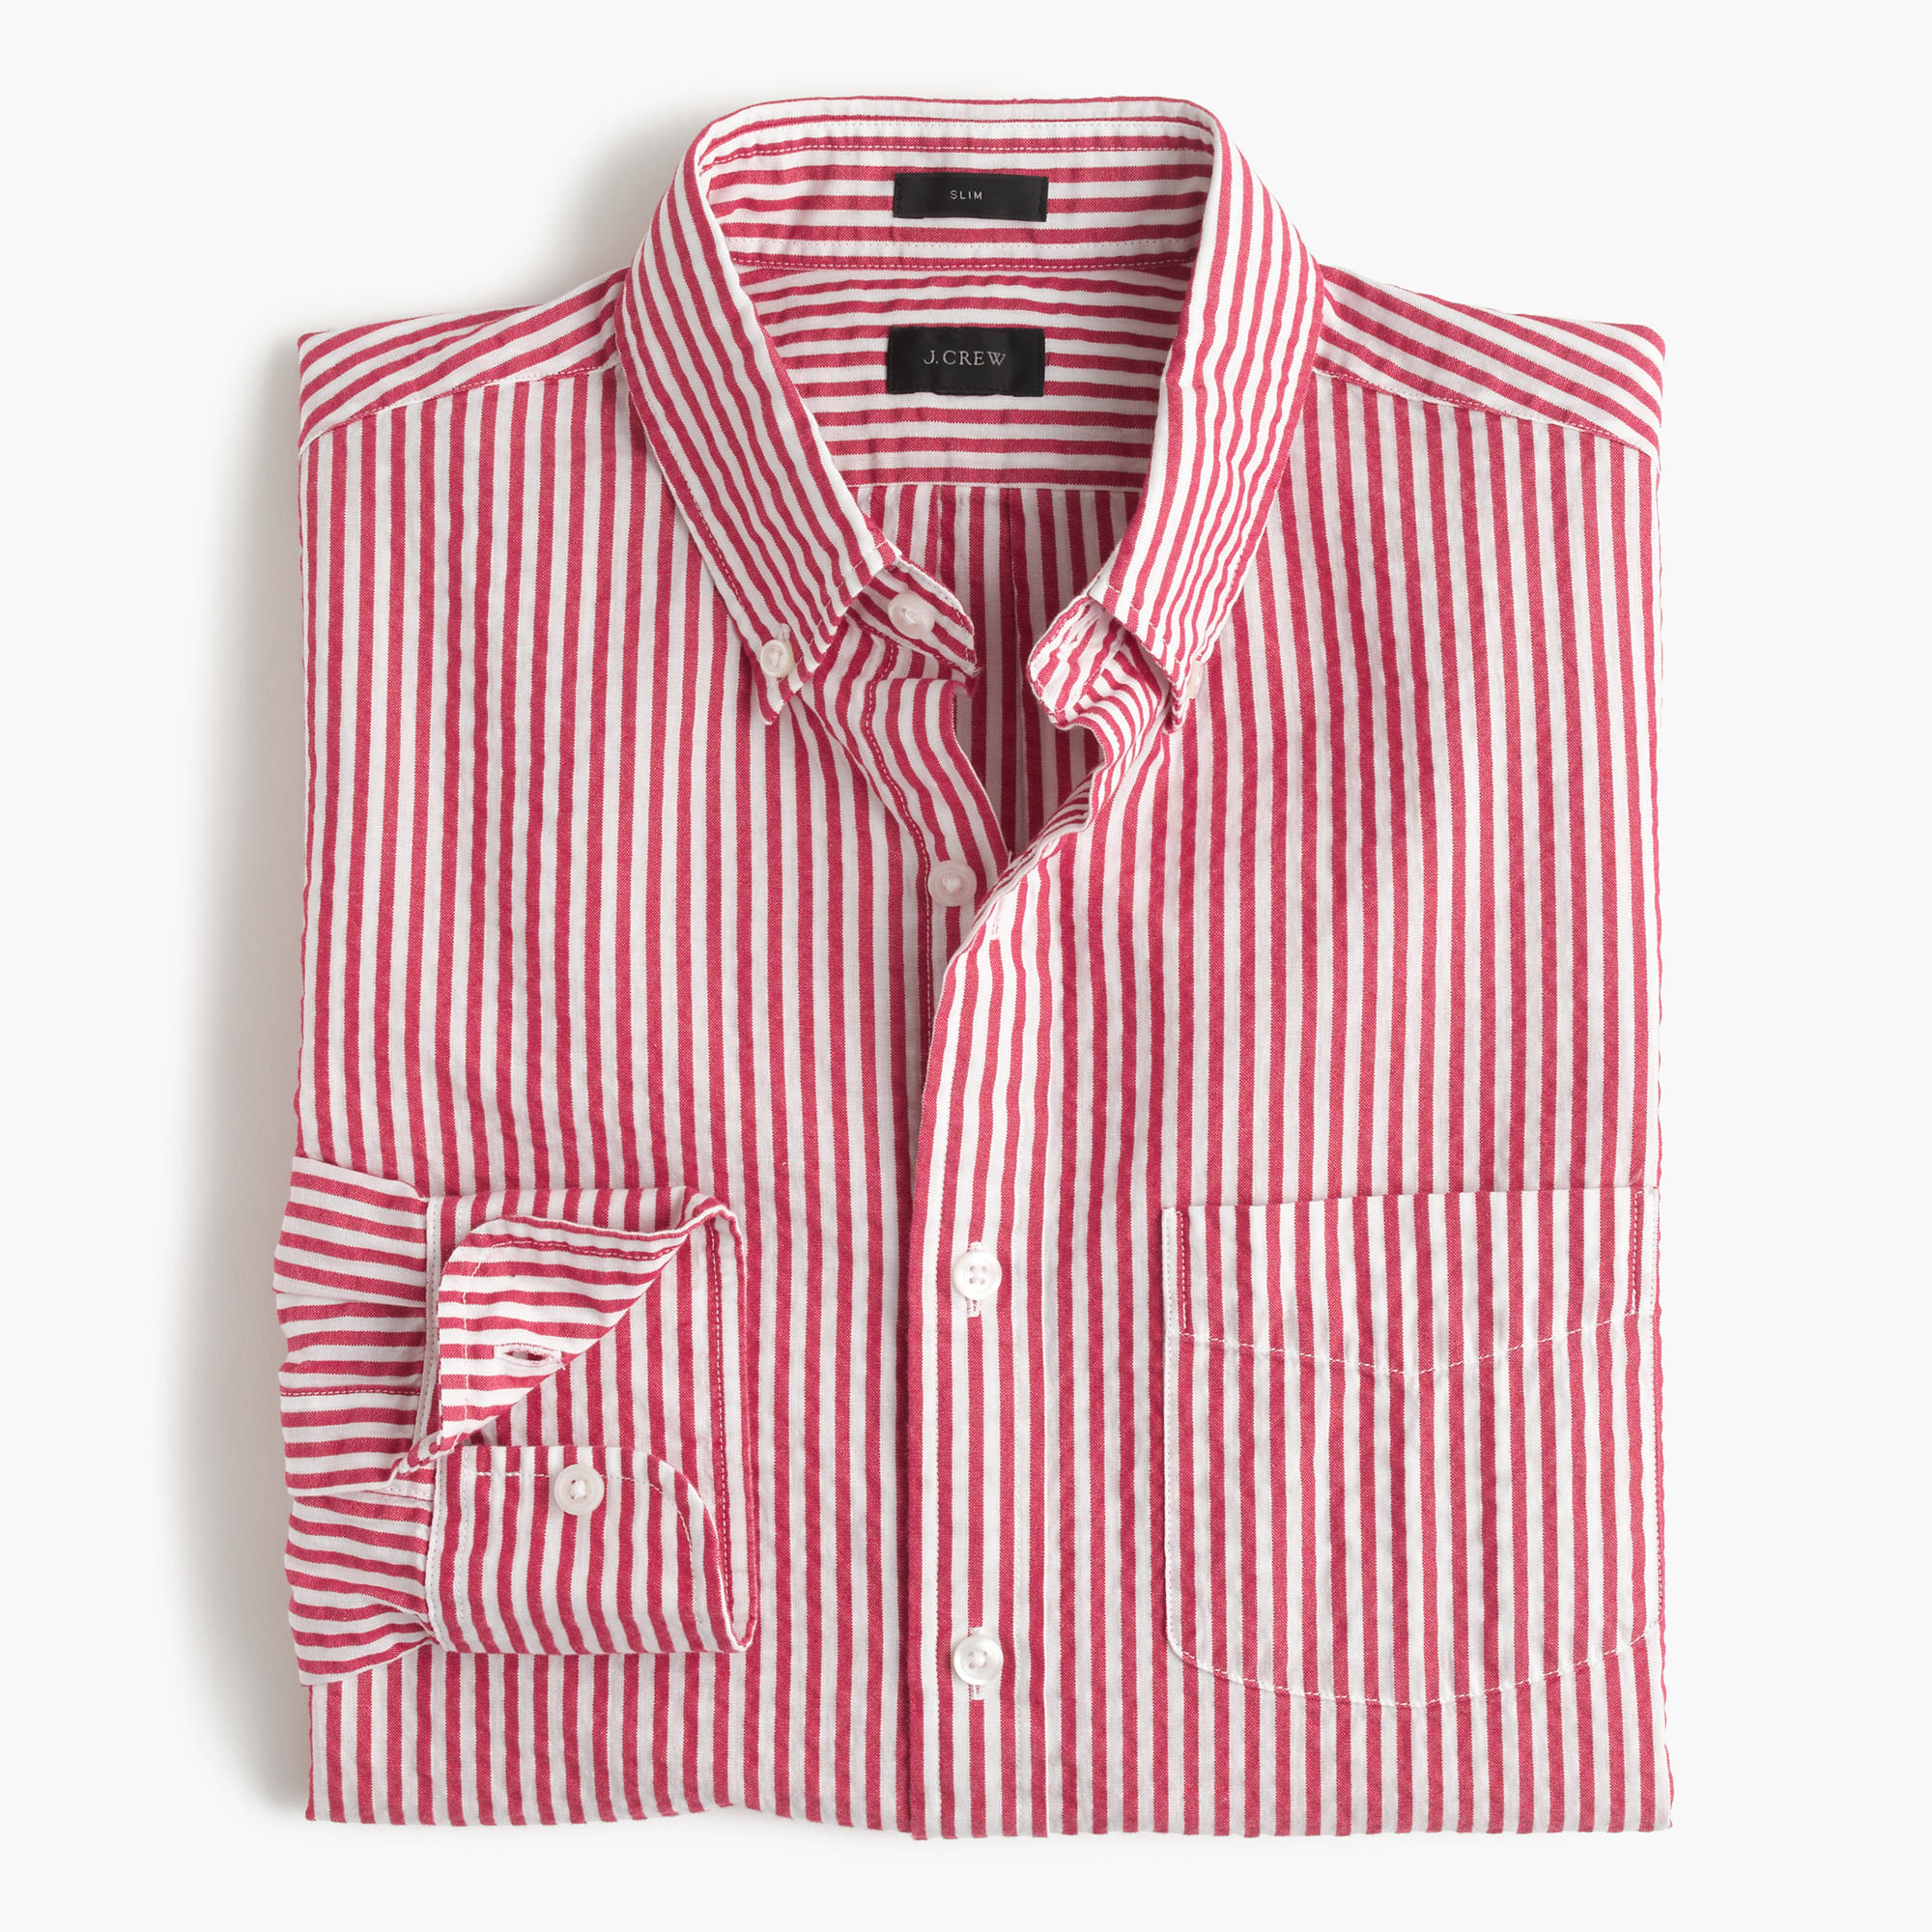 Lyst - J.Crew Slim Seersucker Shirt In Red Stripe in Pink for Men 8df2f9d7bb0e